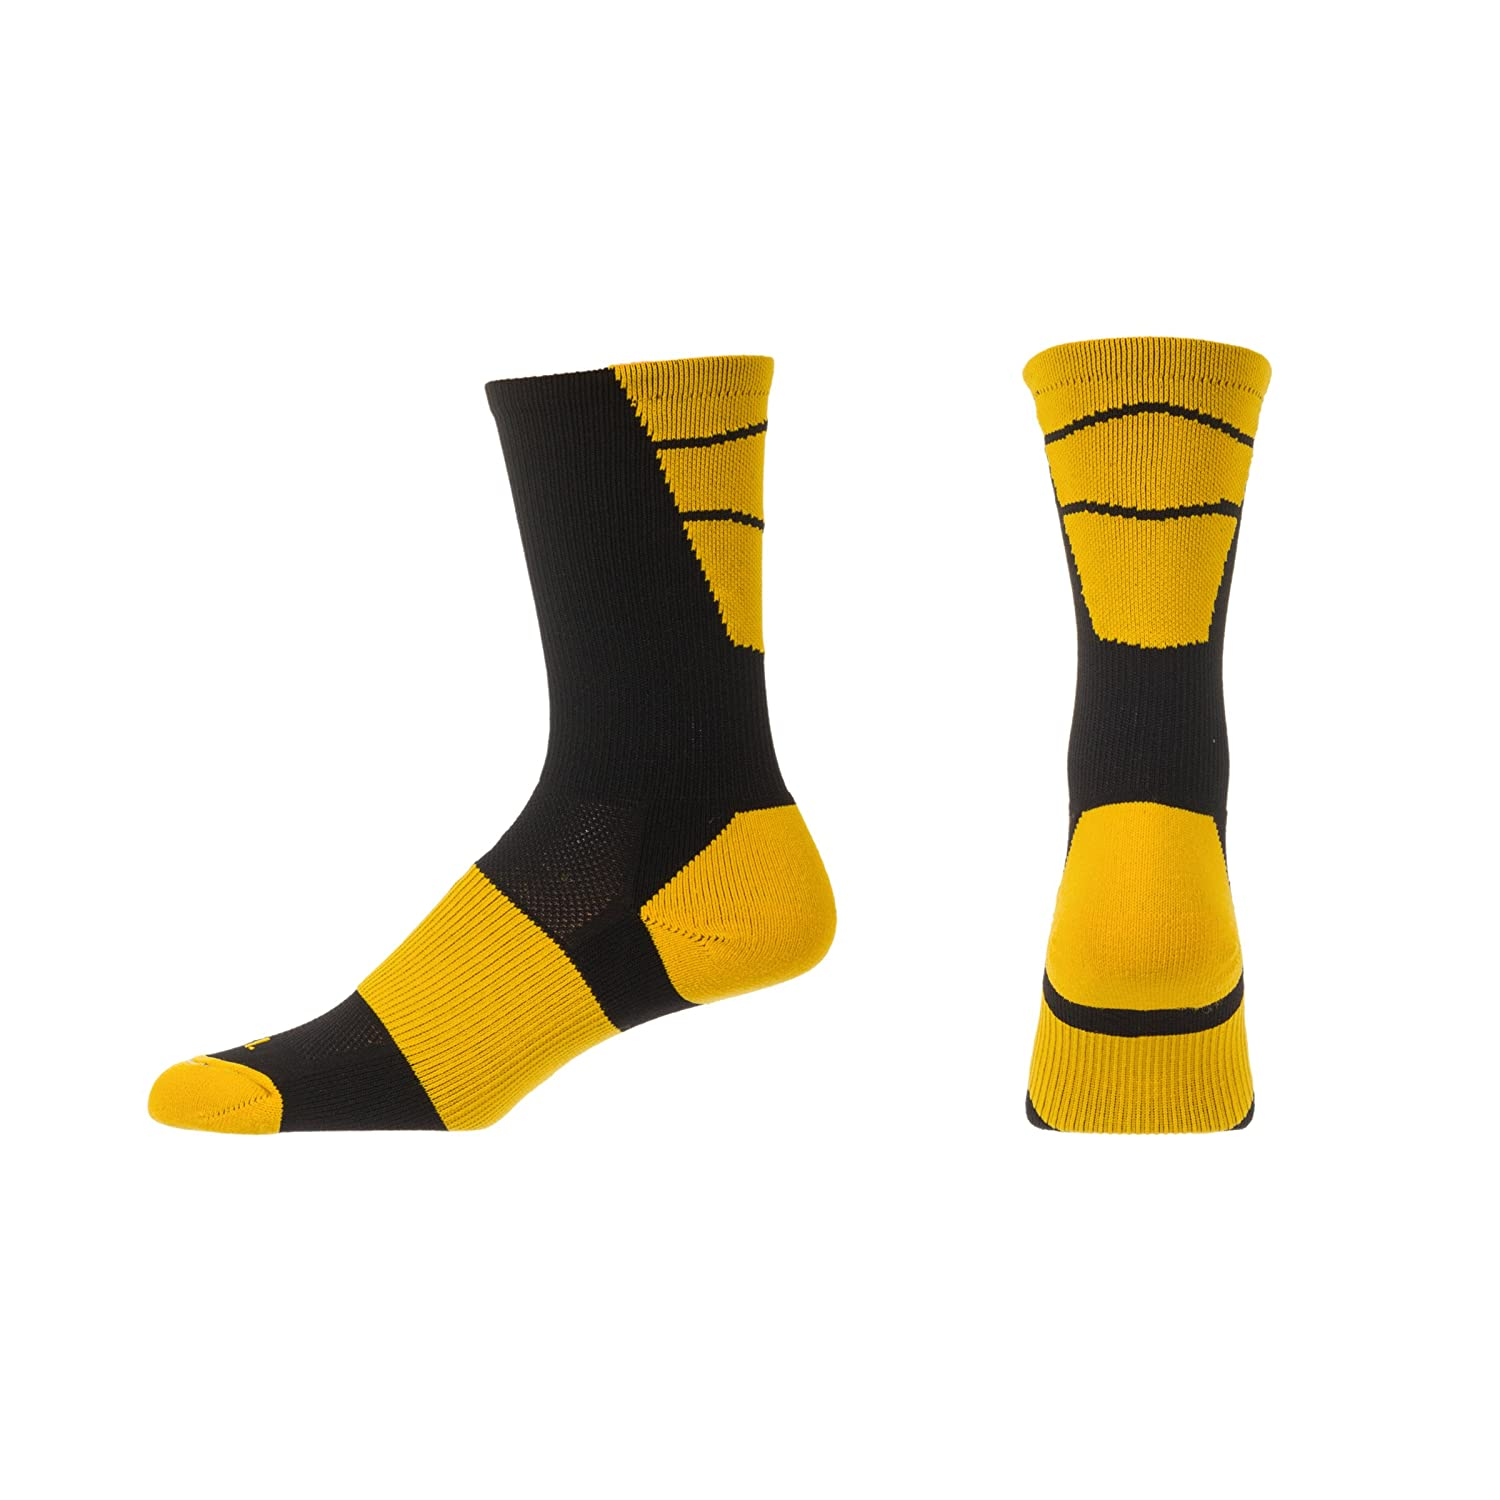 CSI Point Guard Performance Crew Socks Made In The USA Black//Ath Gold